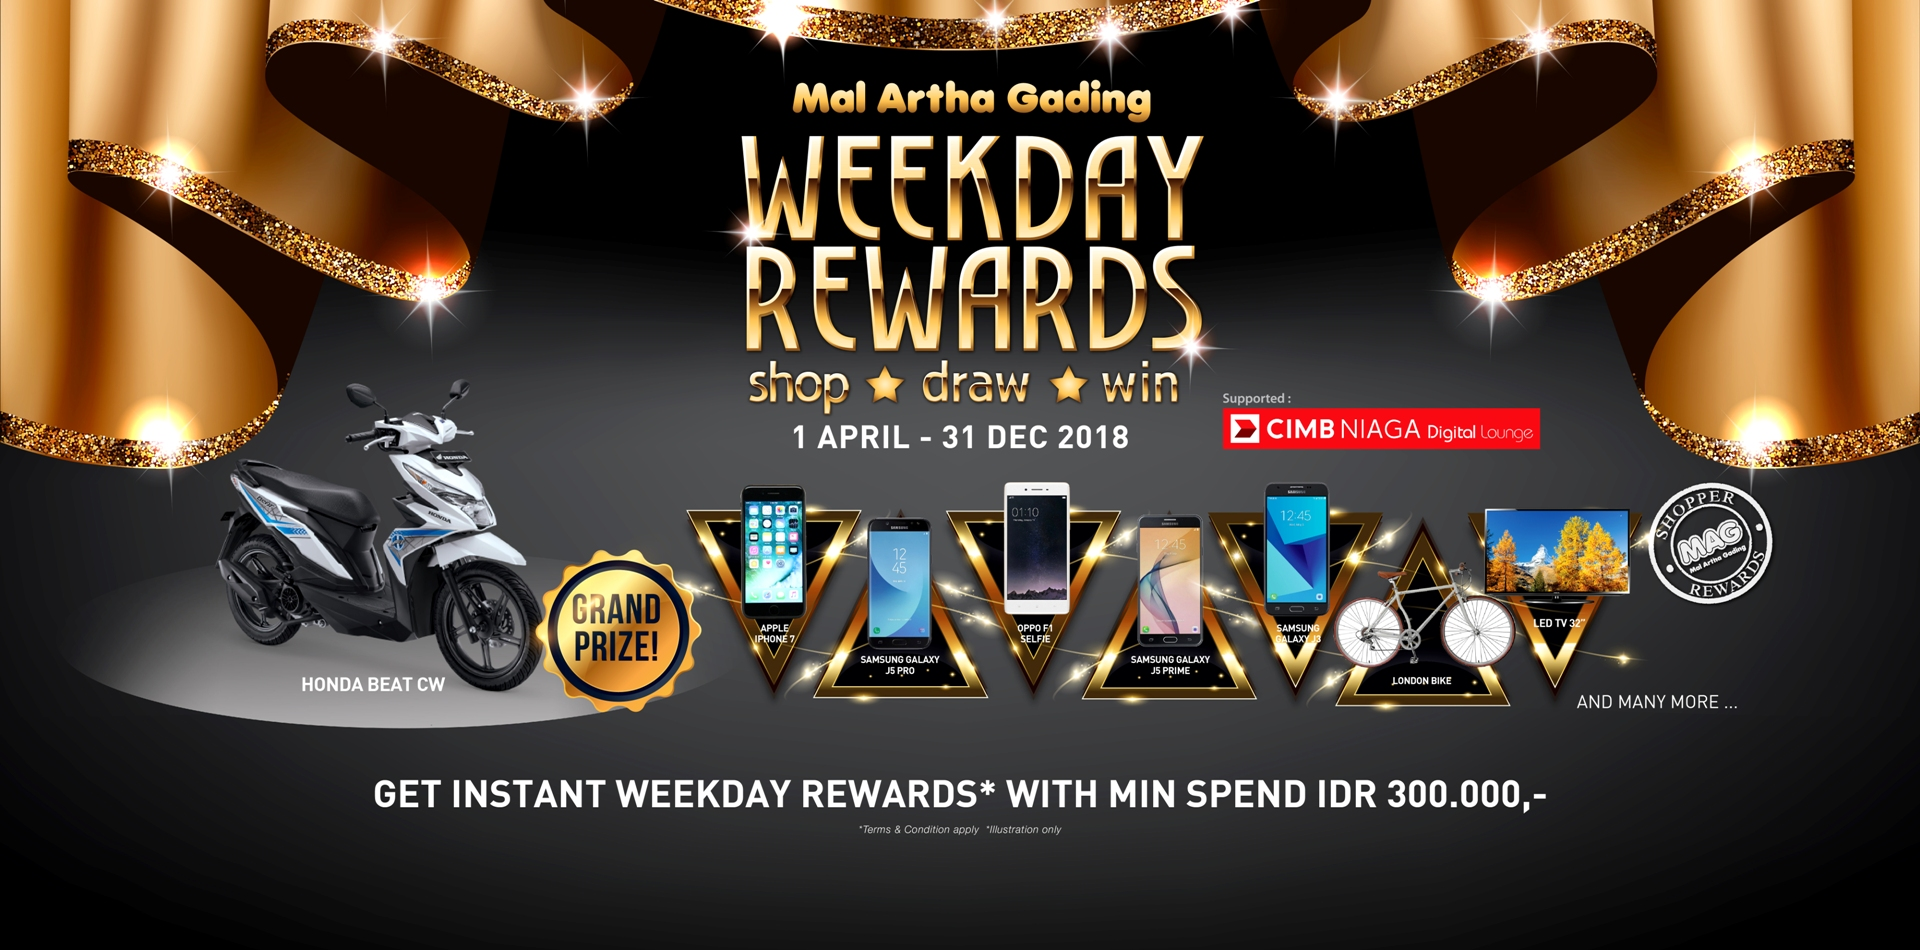 Weekday Rewards 2018